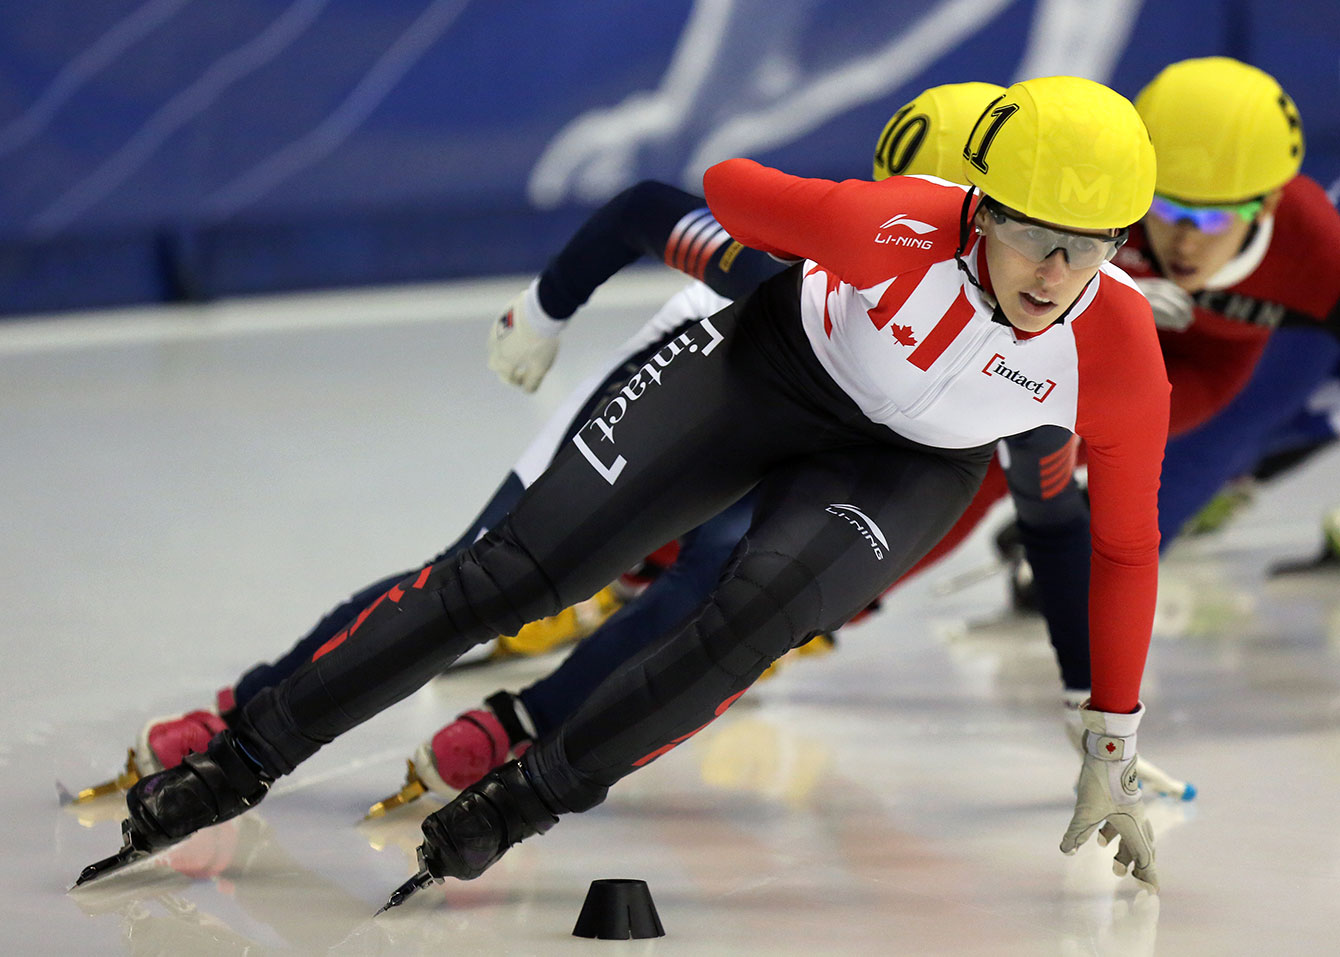 Marianne St-Gelais races on Saturday, October 31 at the season opening World Cup of 2015 in Montreal.